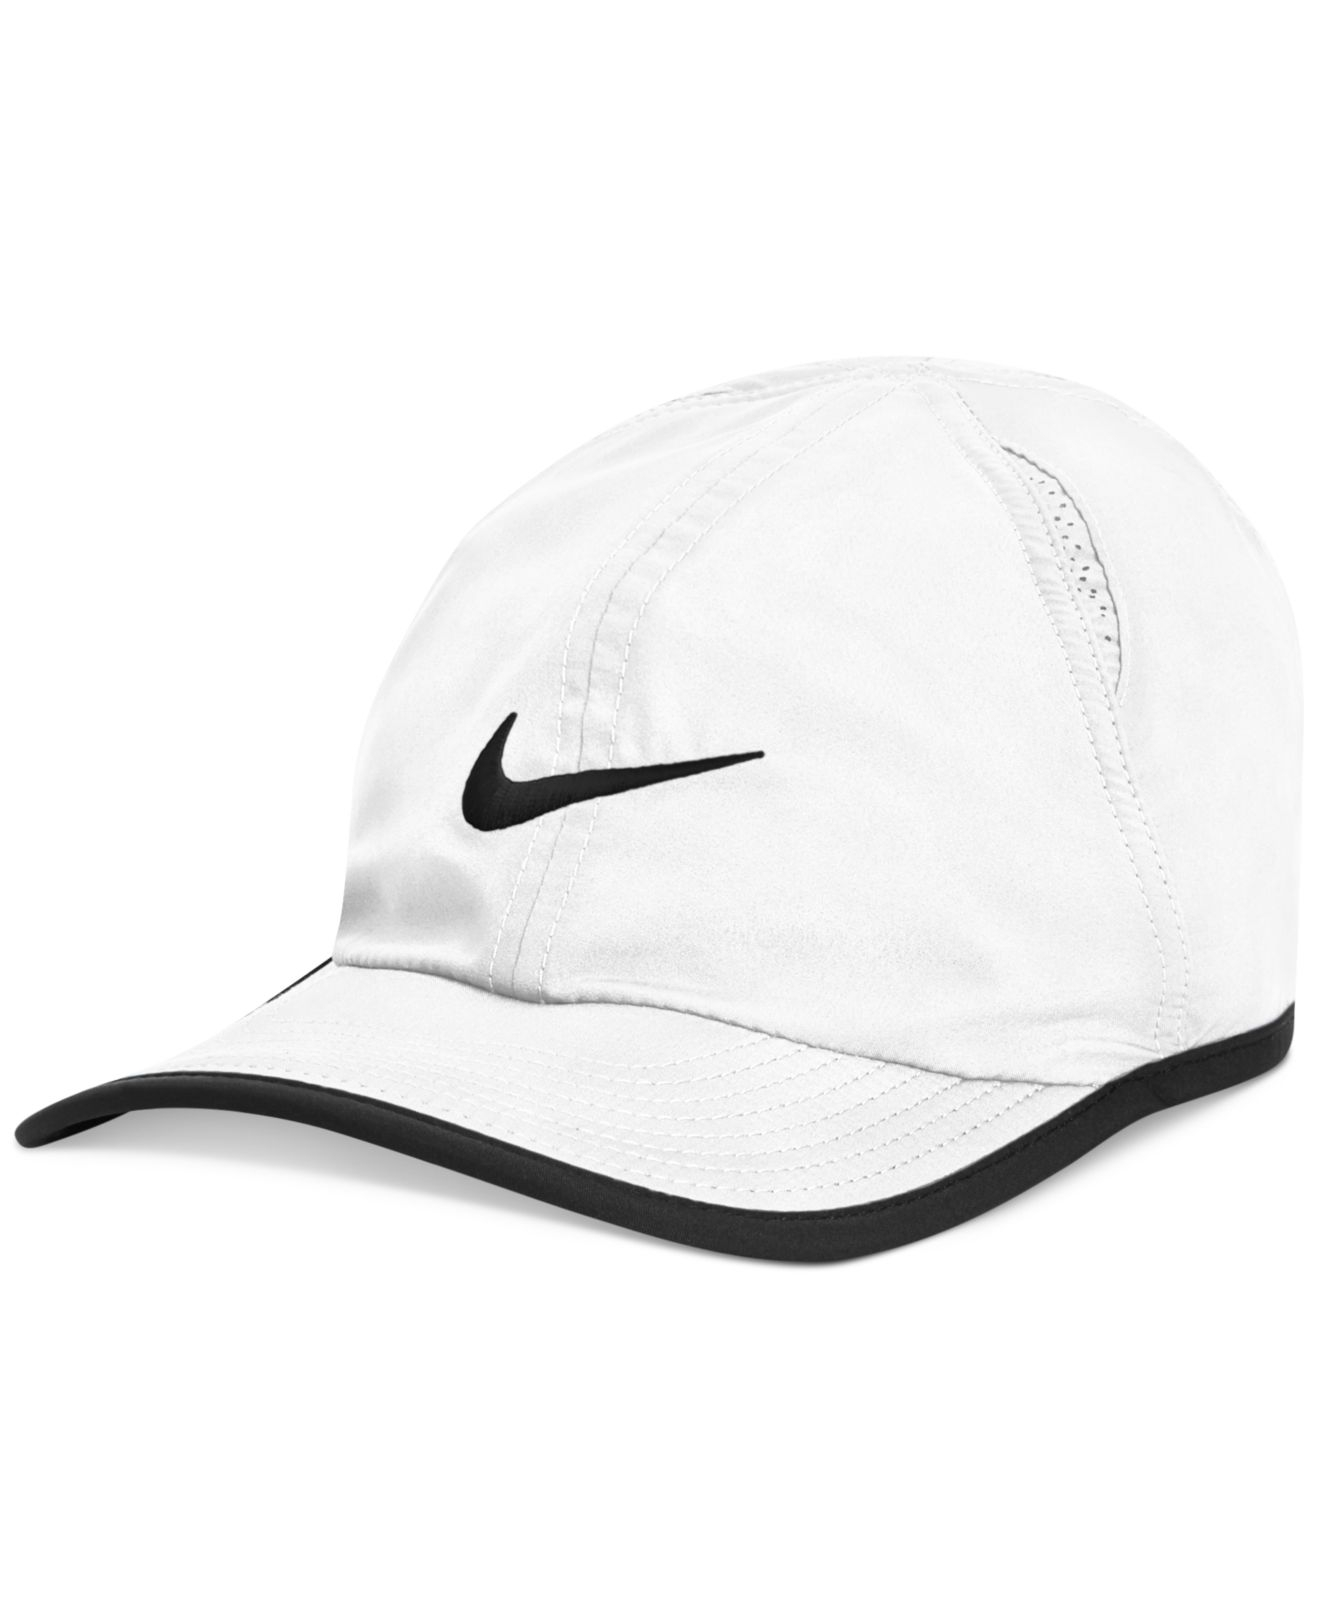 0785047cba7cc5 Lyst - Nike Dri-Fit Featherlight Performance Hat 2.0 in White for Men